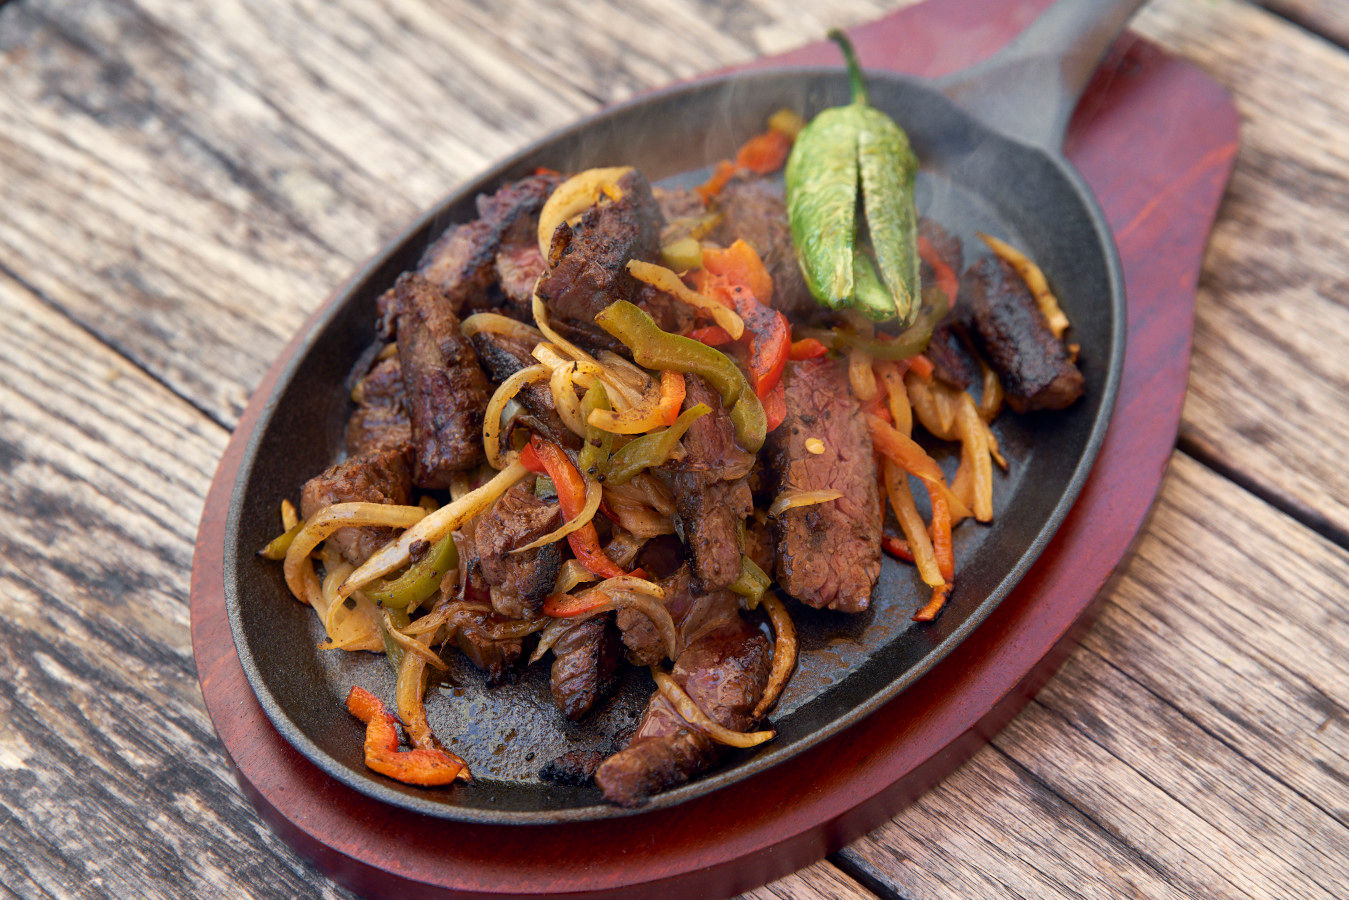 Craving fajitas? You've come to the right place!